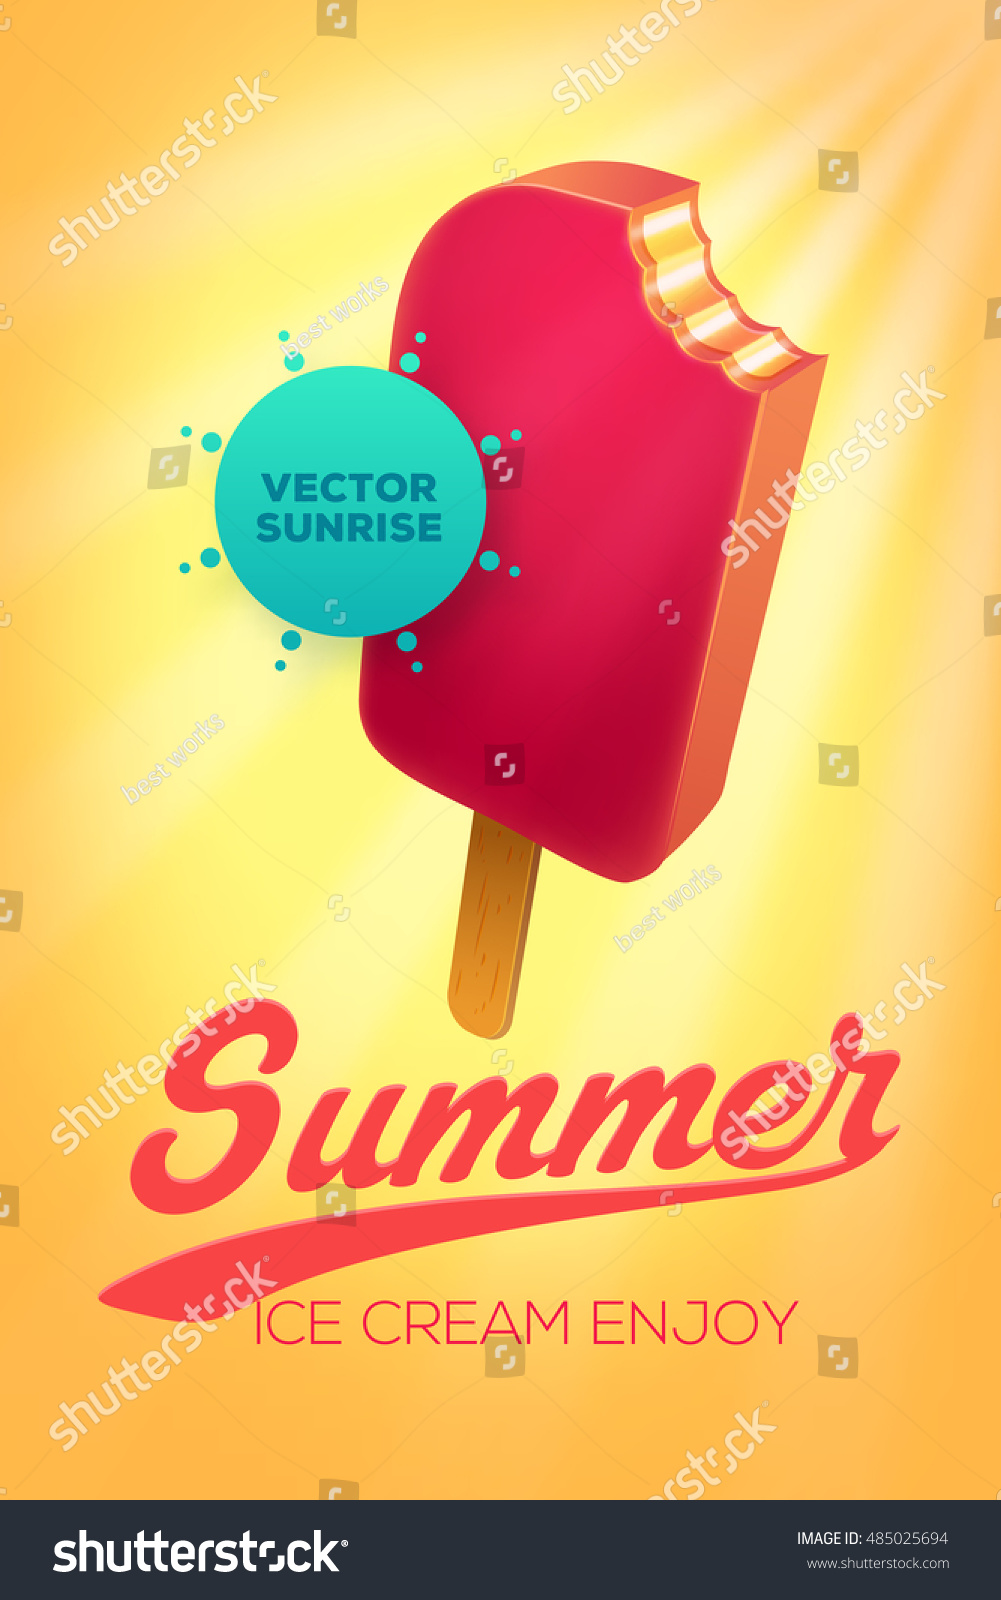 Poster design vector - Summer Vector Poster Design Template With Ice Cream In Sky